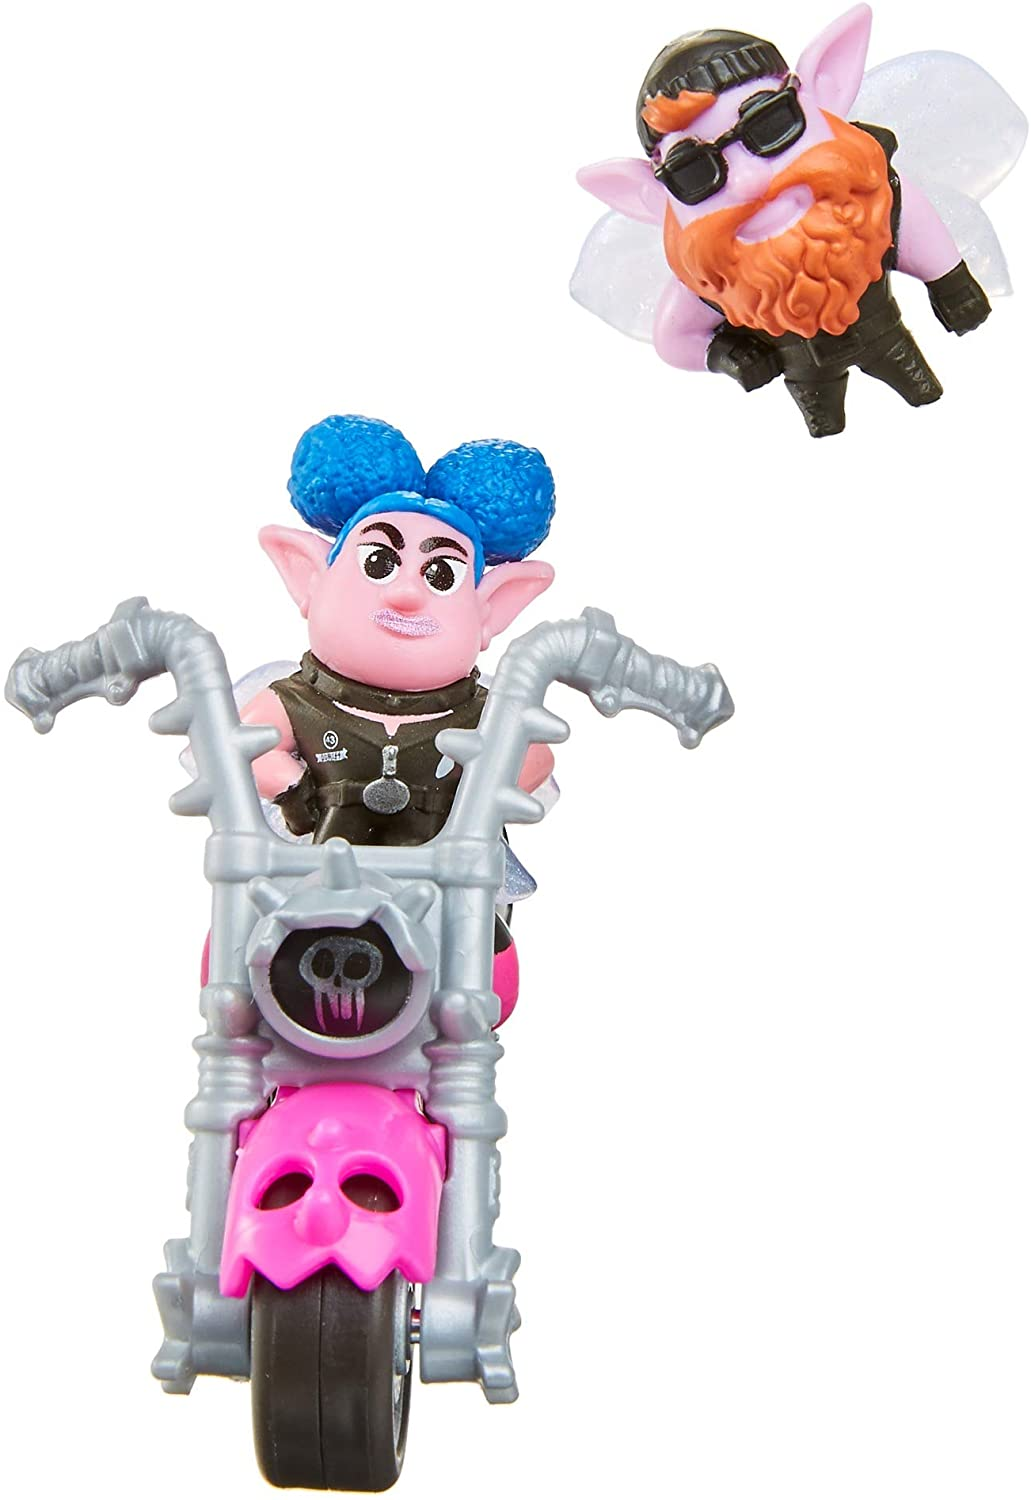 Disney Pixar Onward Minis Sprites & Motorcycle Figure 2-Pack